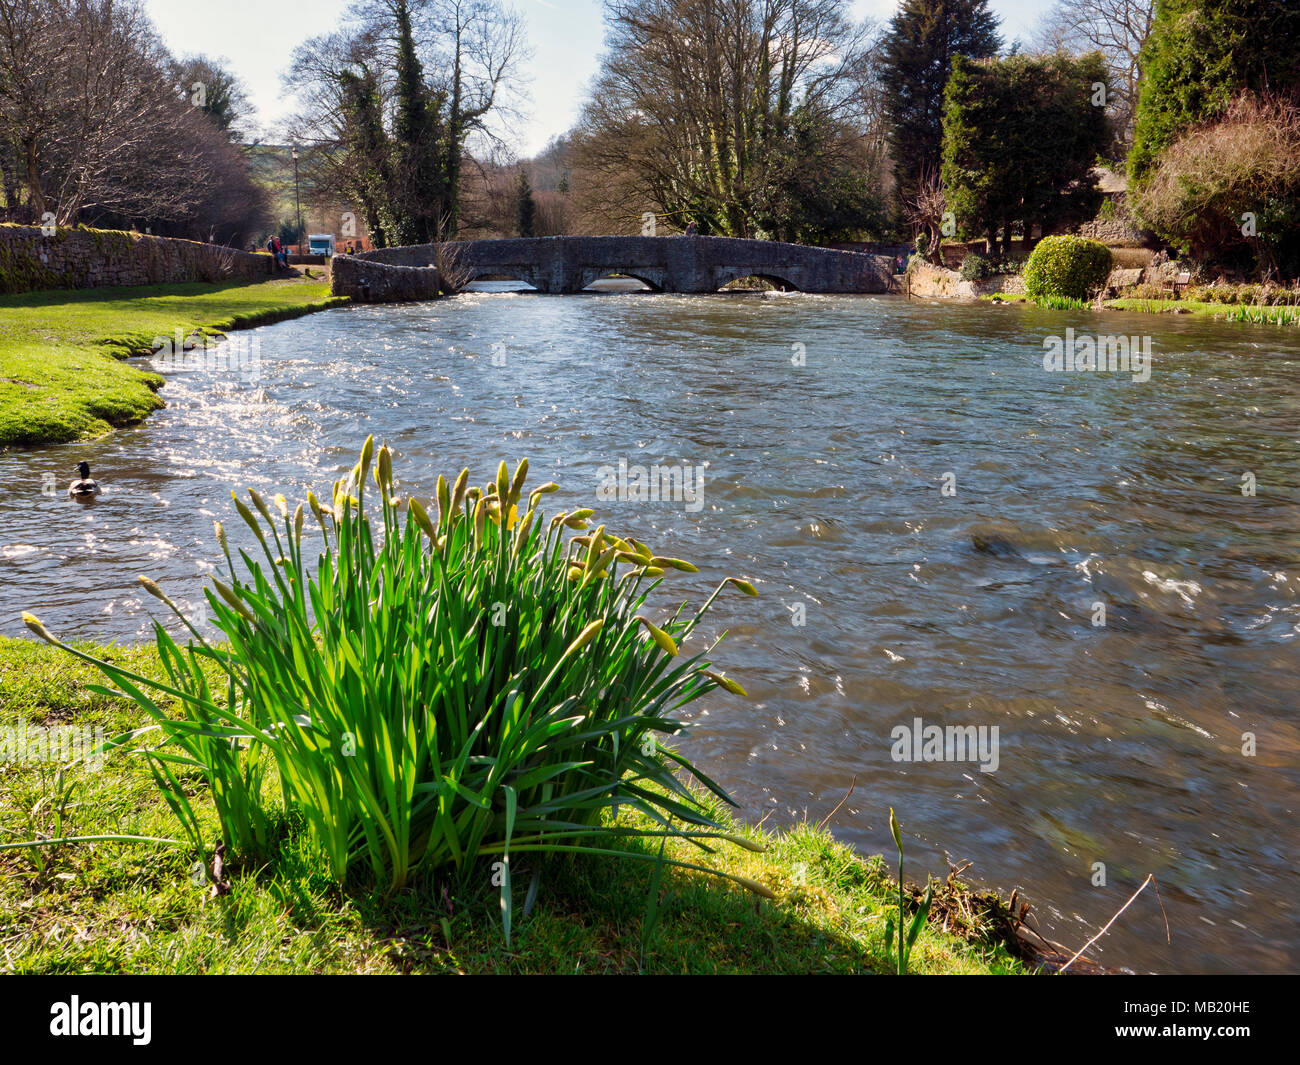 Peak District National Park. 5th Apr, 2018. UK Weather: visitors enjoying the glorious sunshine on Thursday after the wet Easter Bank Holiday break at Ashford on the Water, near Bakewell in the Peak District National Park Credit: Doug Blane/Alamy Live News Stock Photo